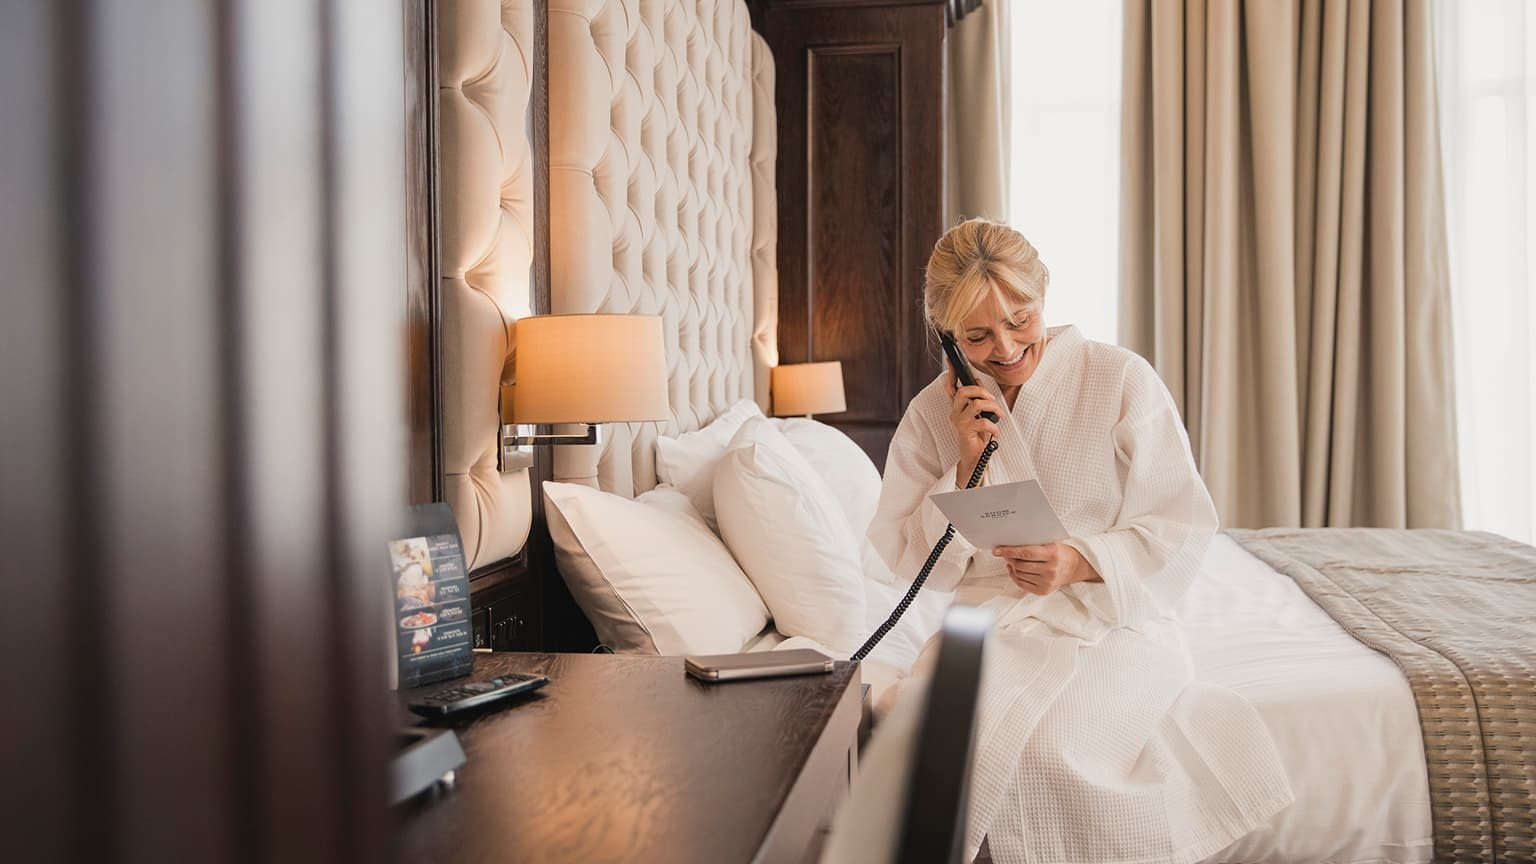 Mature woman is sitting on her bed in her hotel room